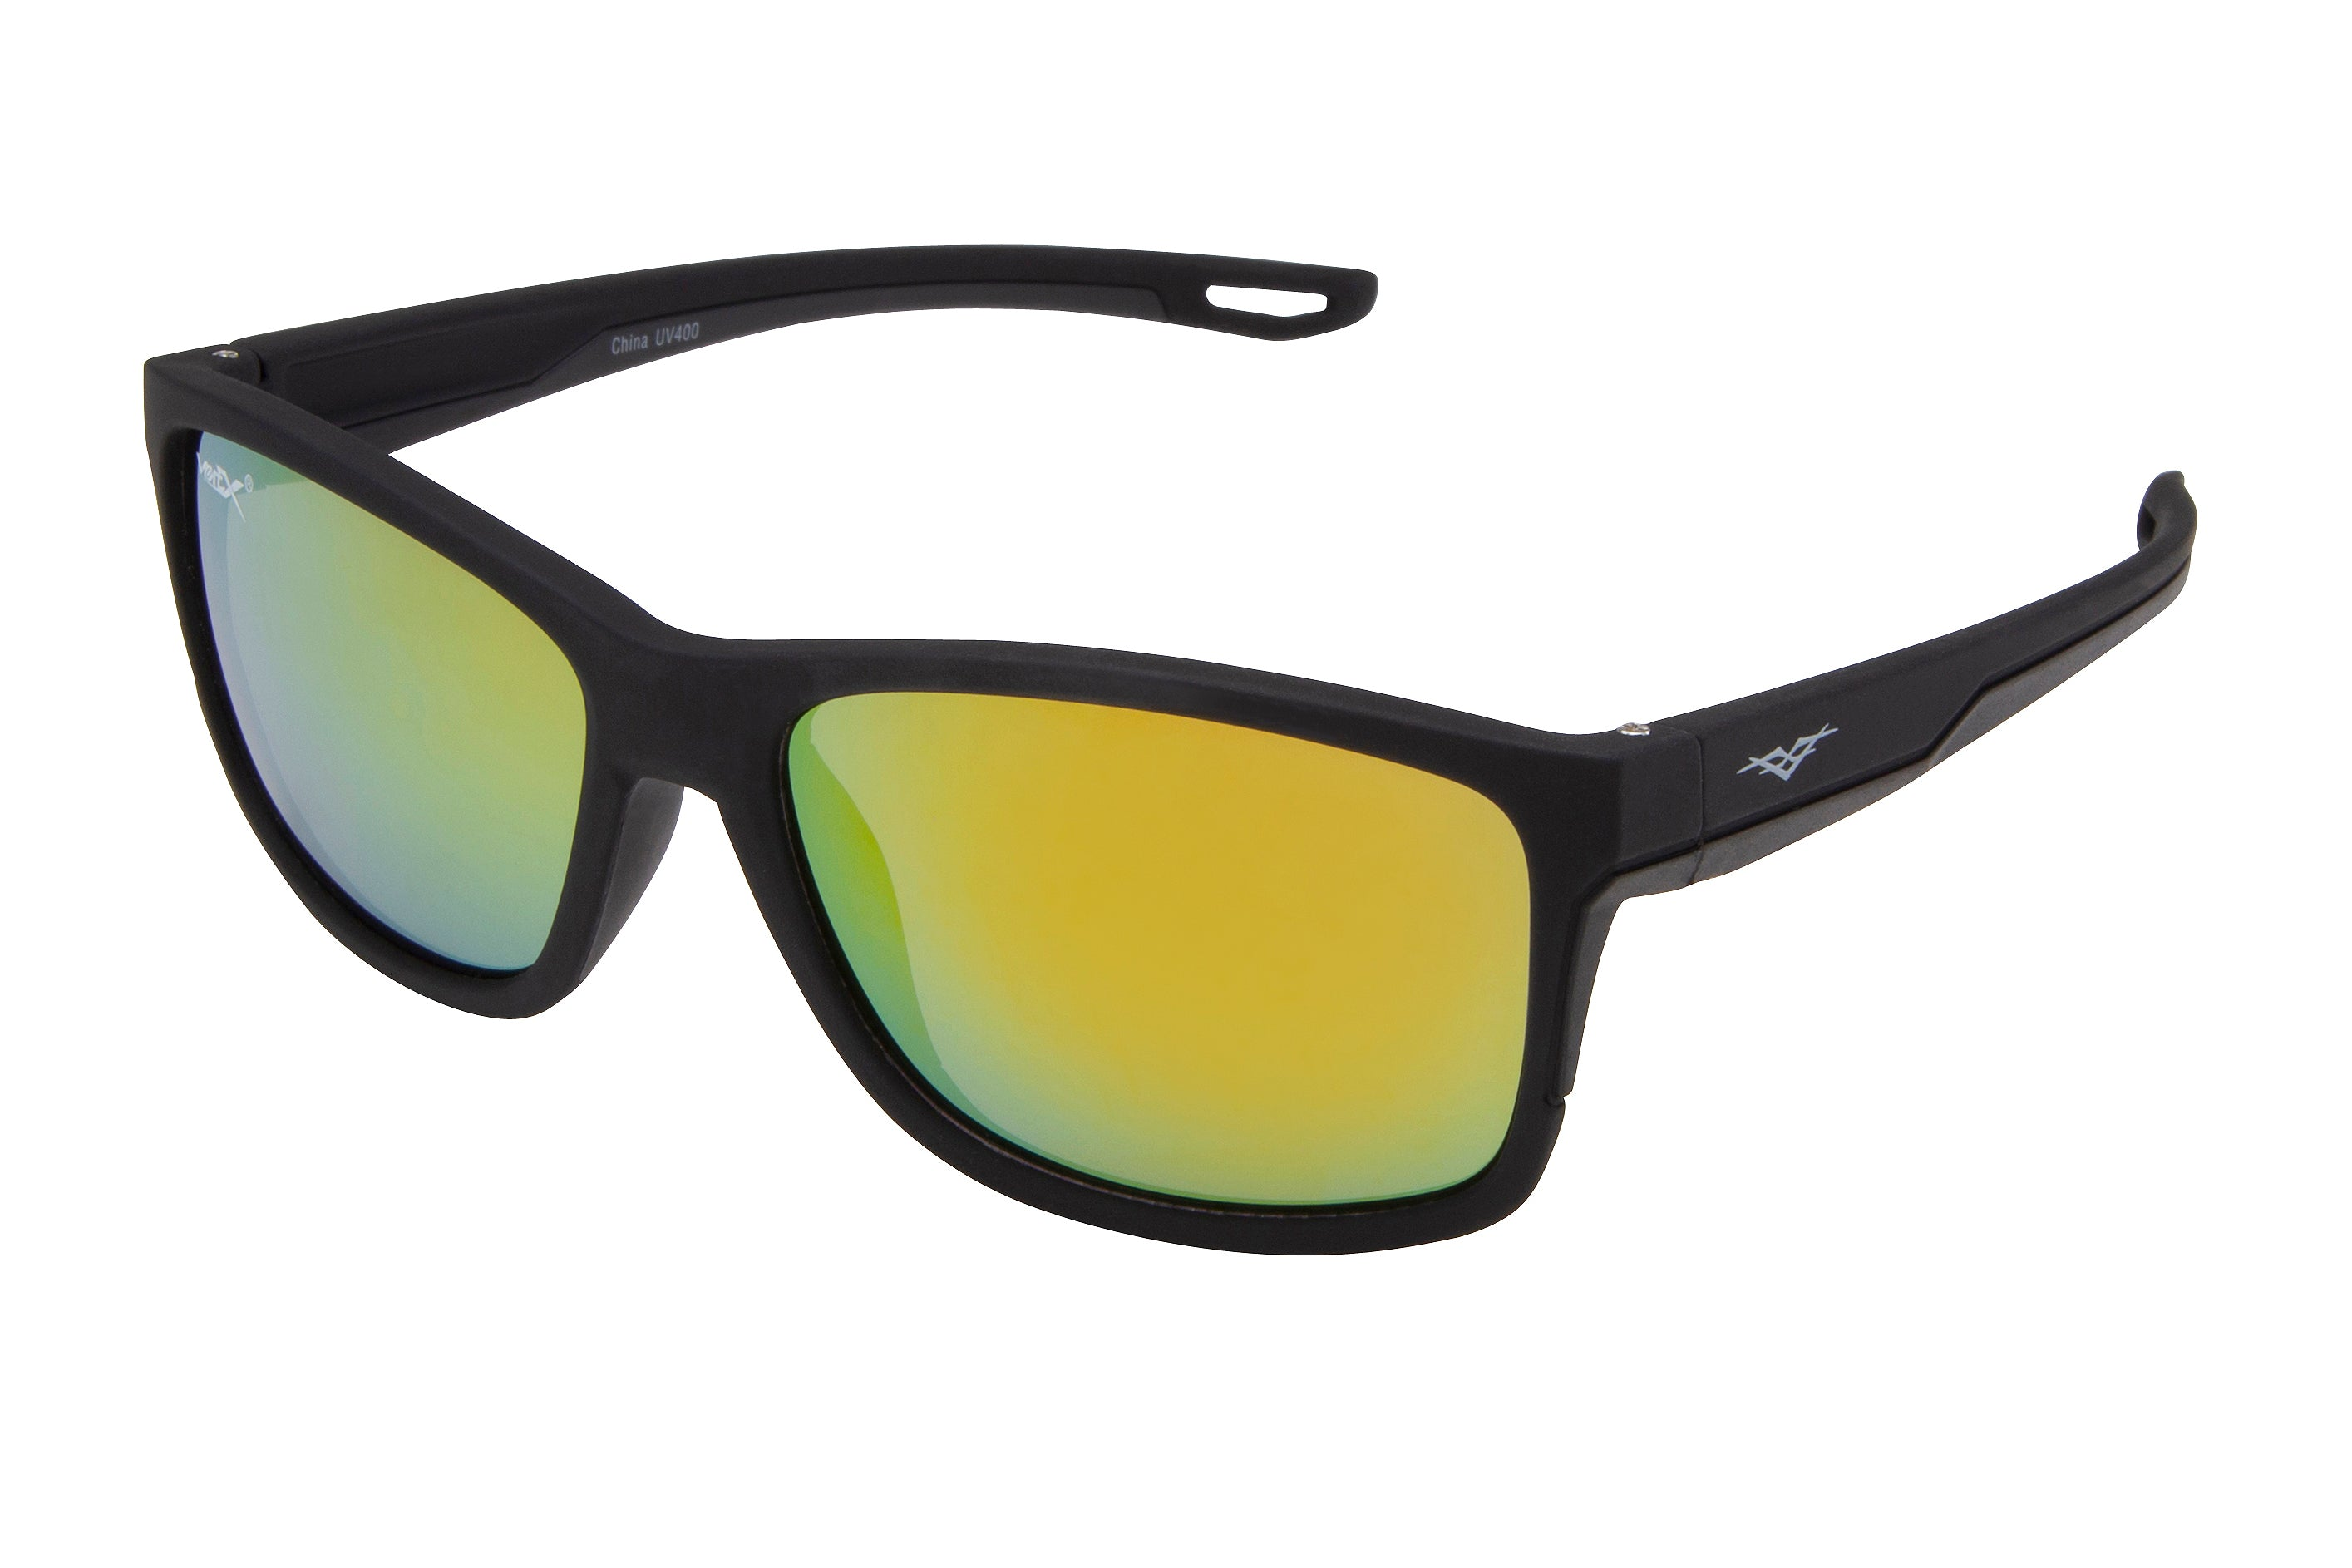 59207 - VertX Classic PC Sports Sunglasses